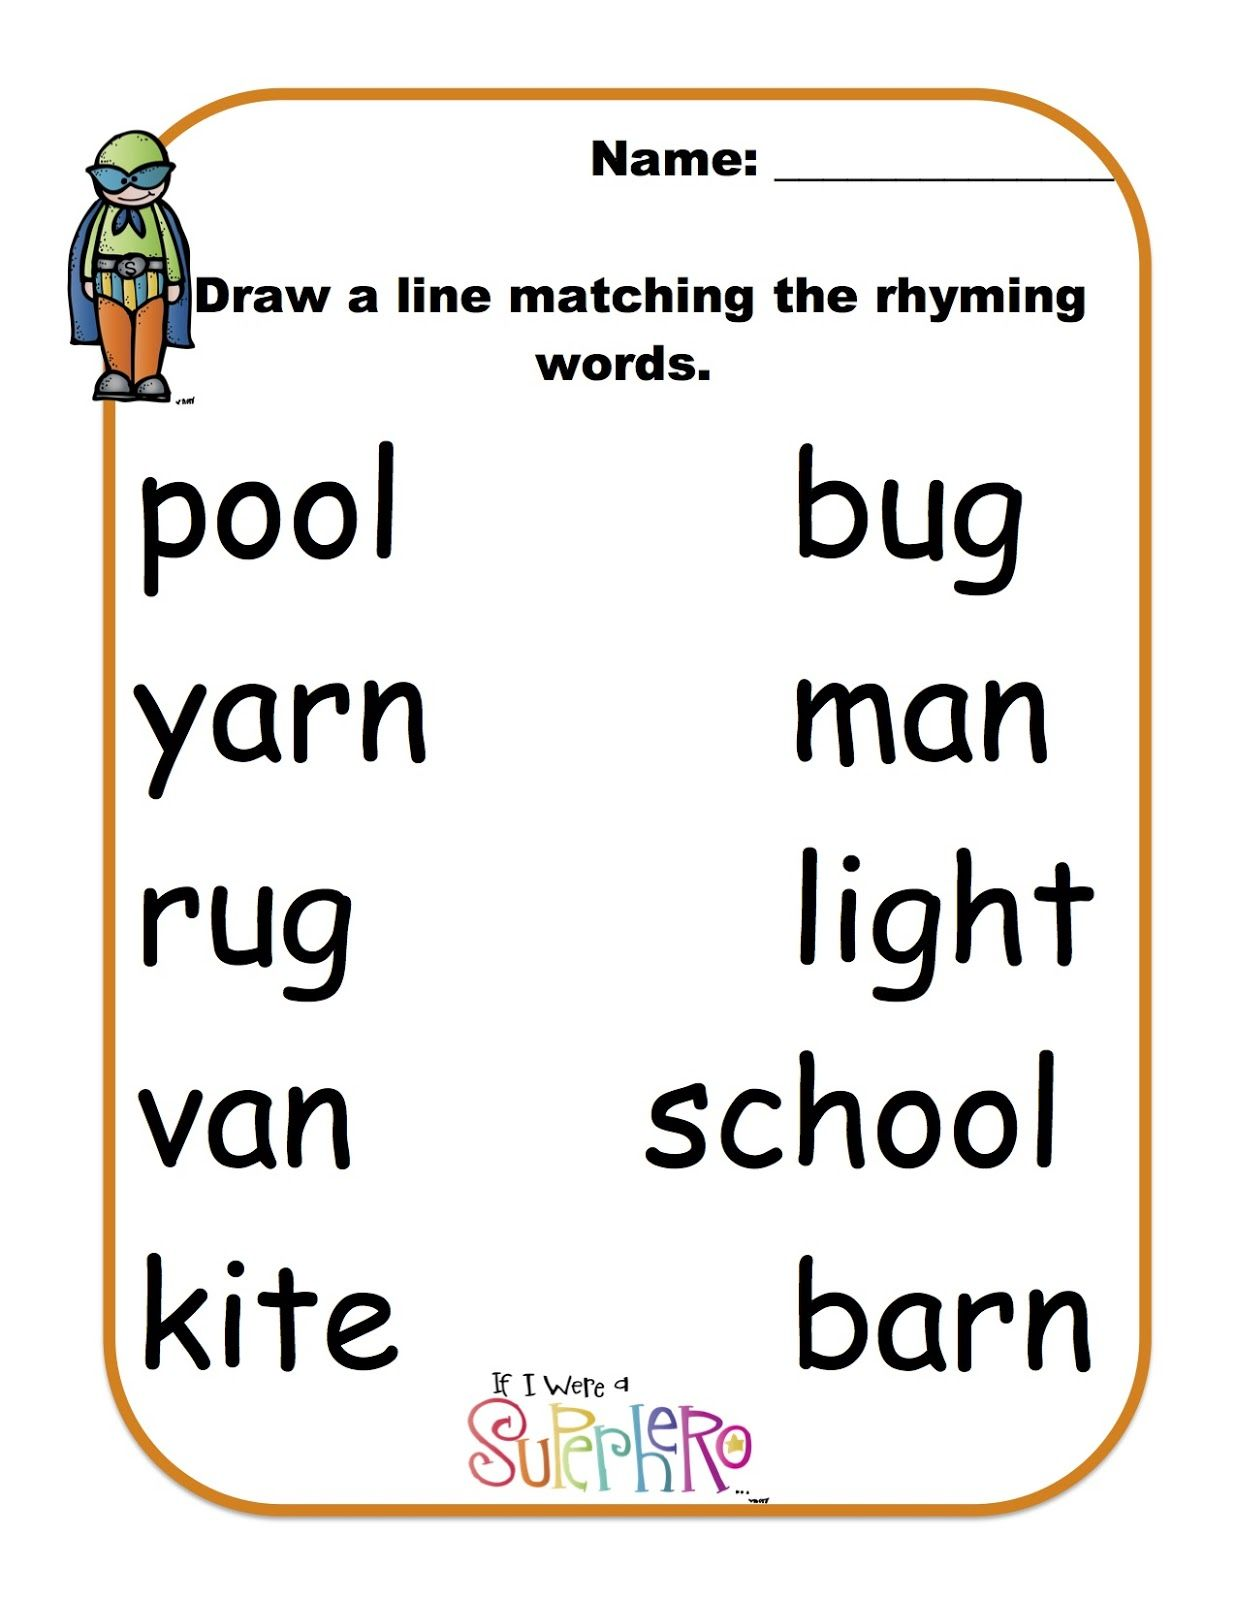 Worksheet Rhyming Words For Free 17 best images about rhyming words on pinterest dr seuss activity games and literacy